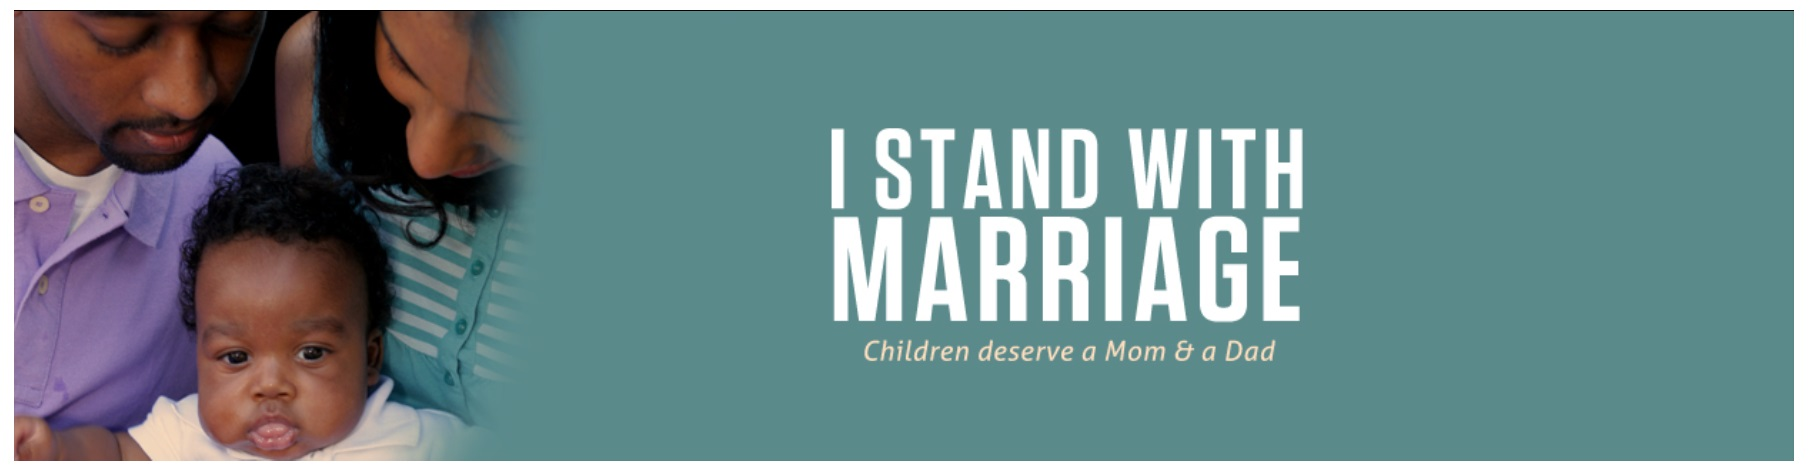 I Stand With Marriage Rotator